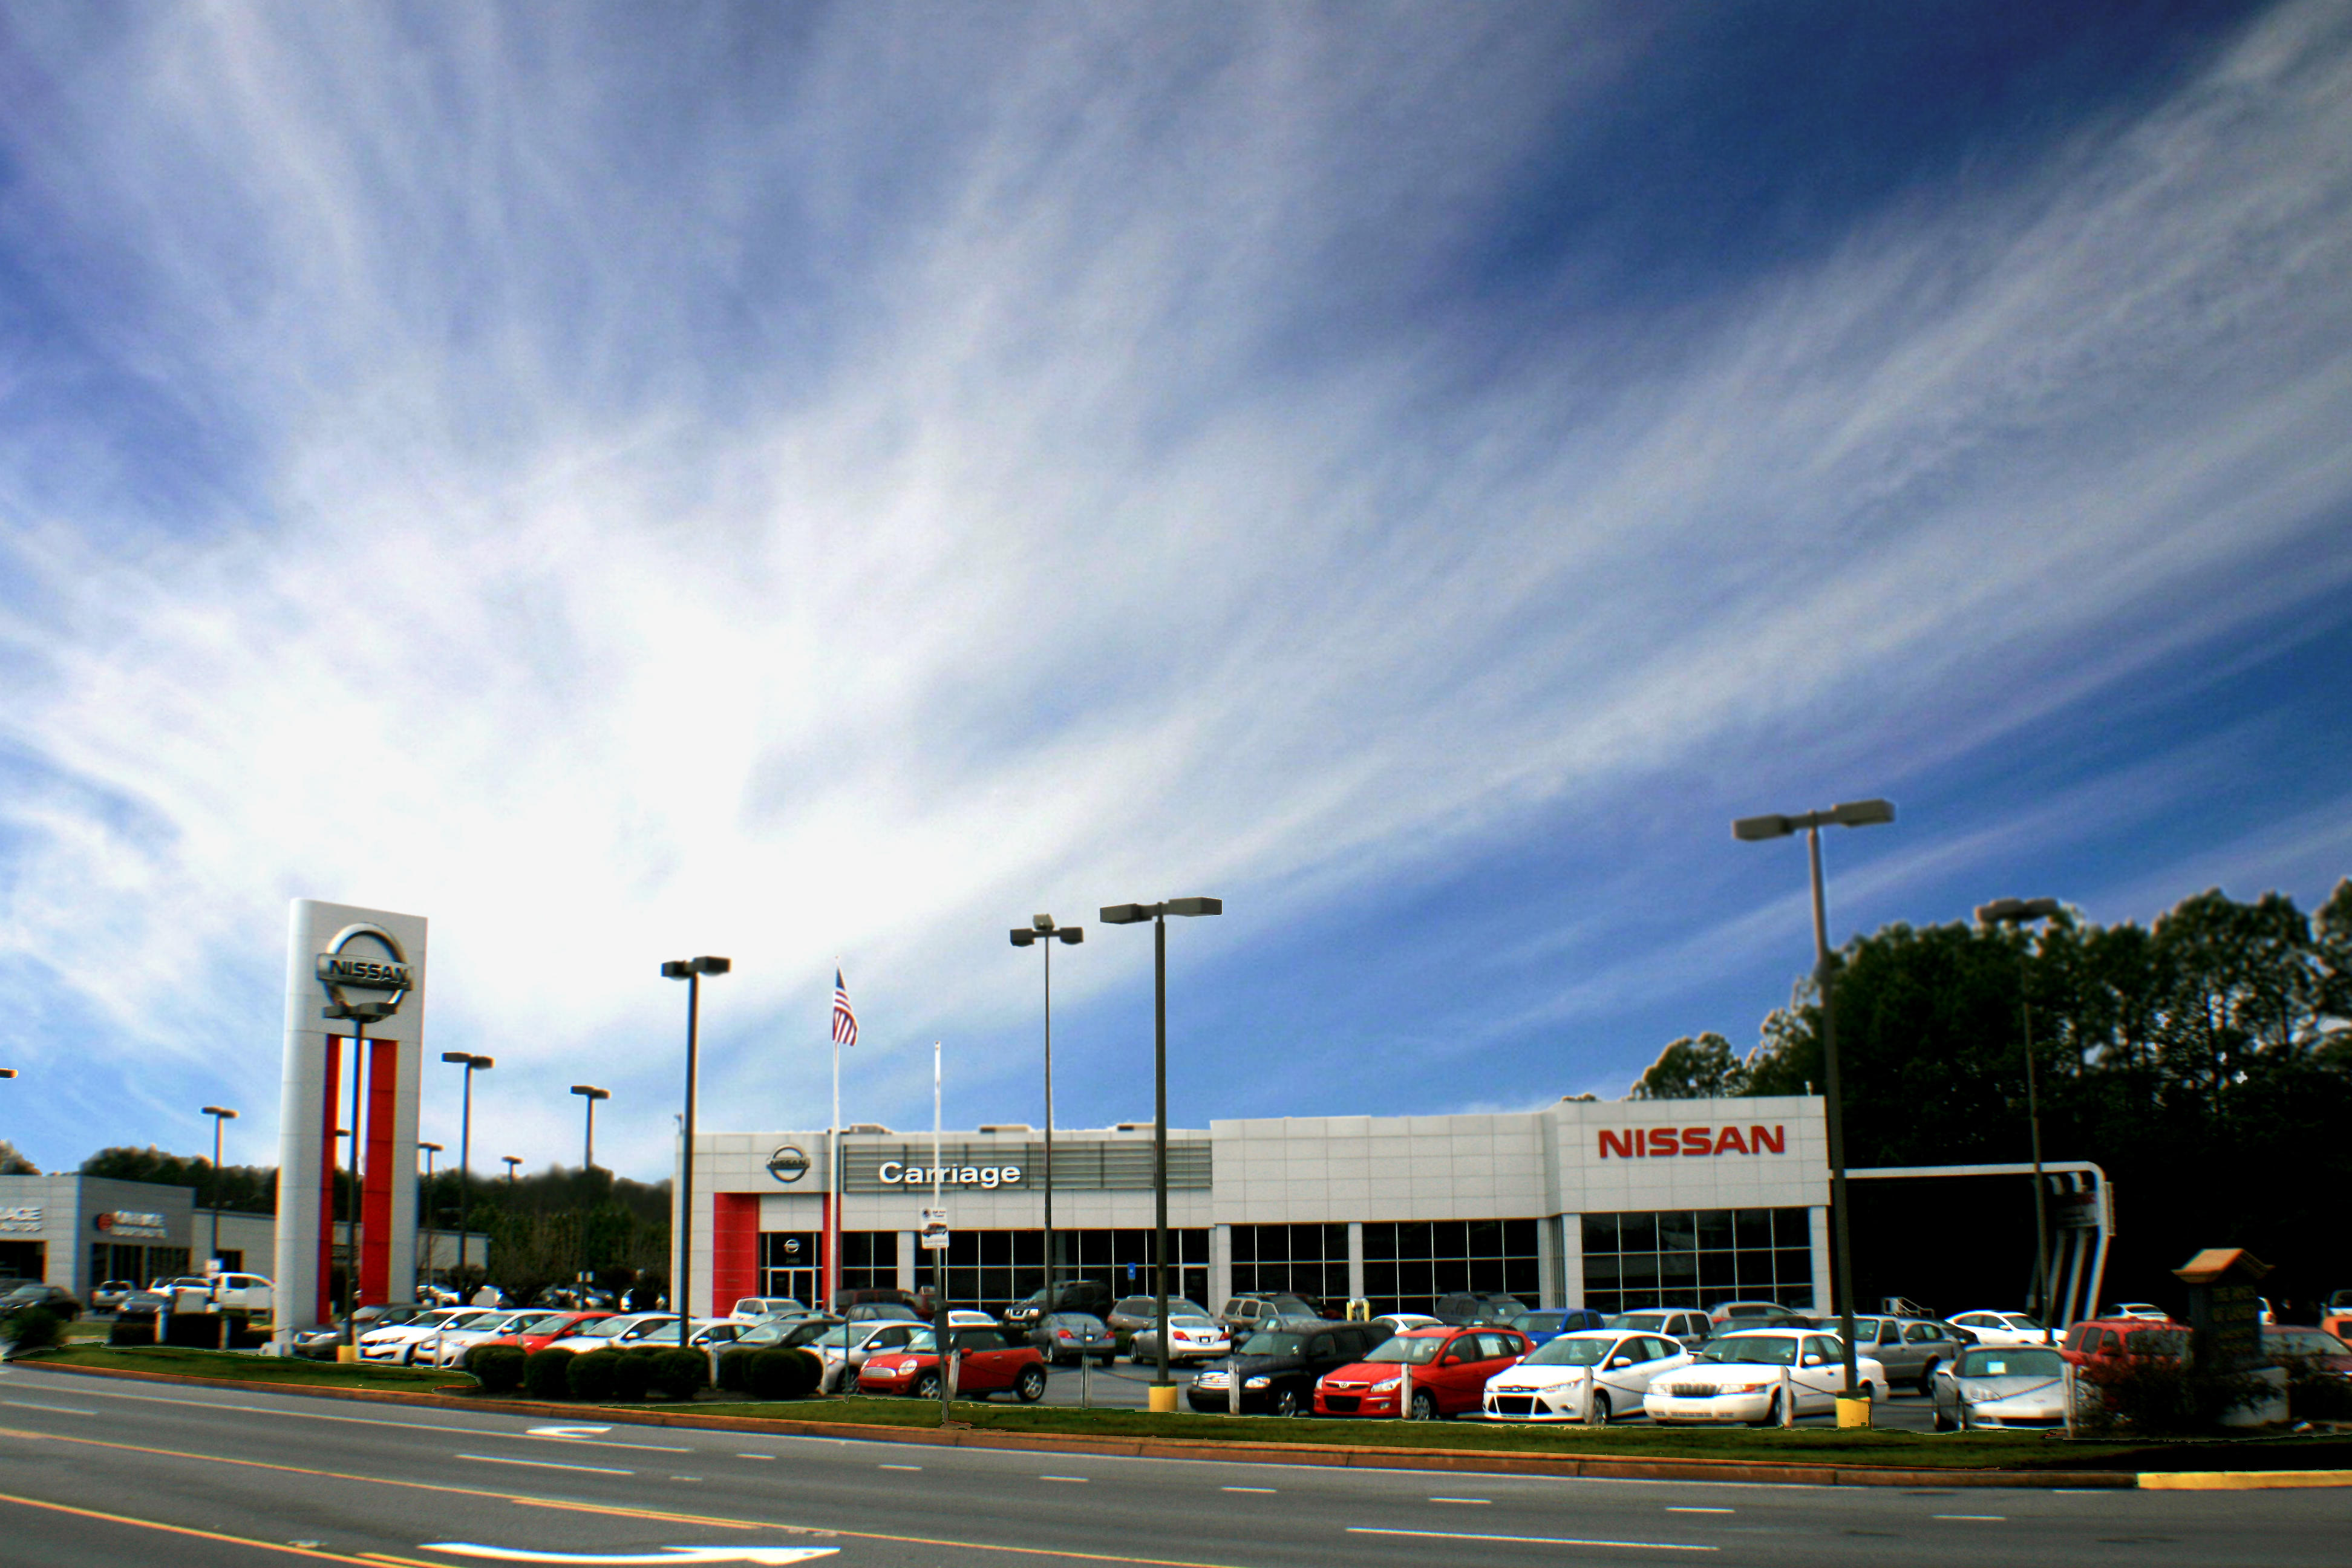 Carriage Nissan Gainesville Ga >> Carriage Nissan Coupons near me in Gainesville | 8coupons